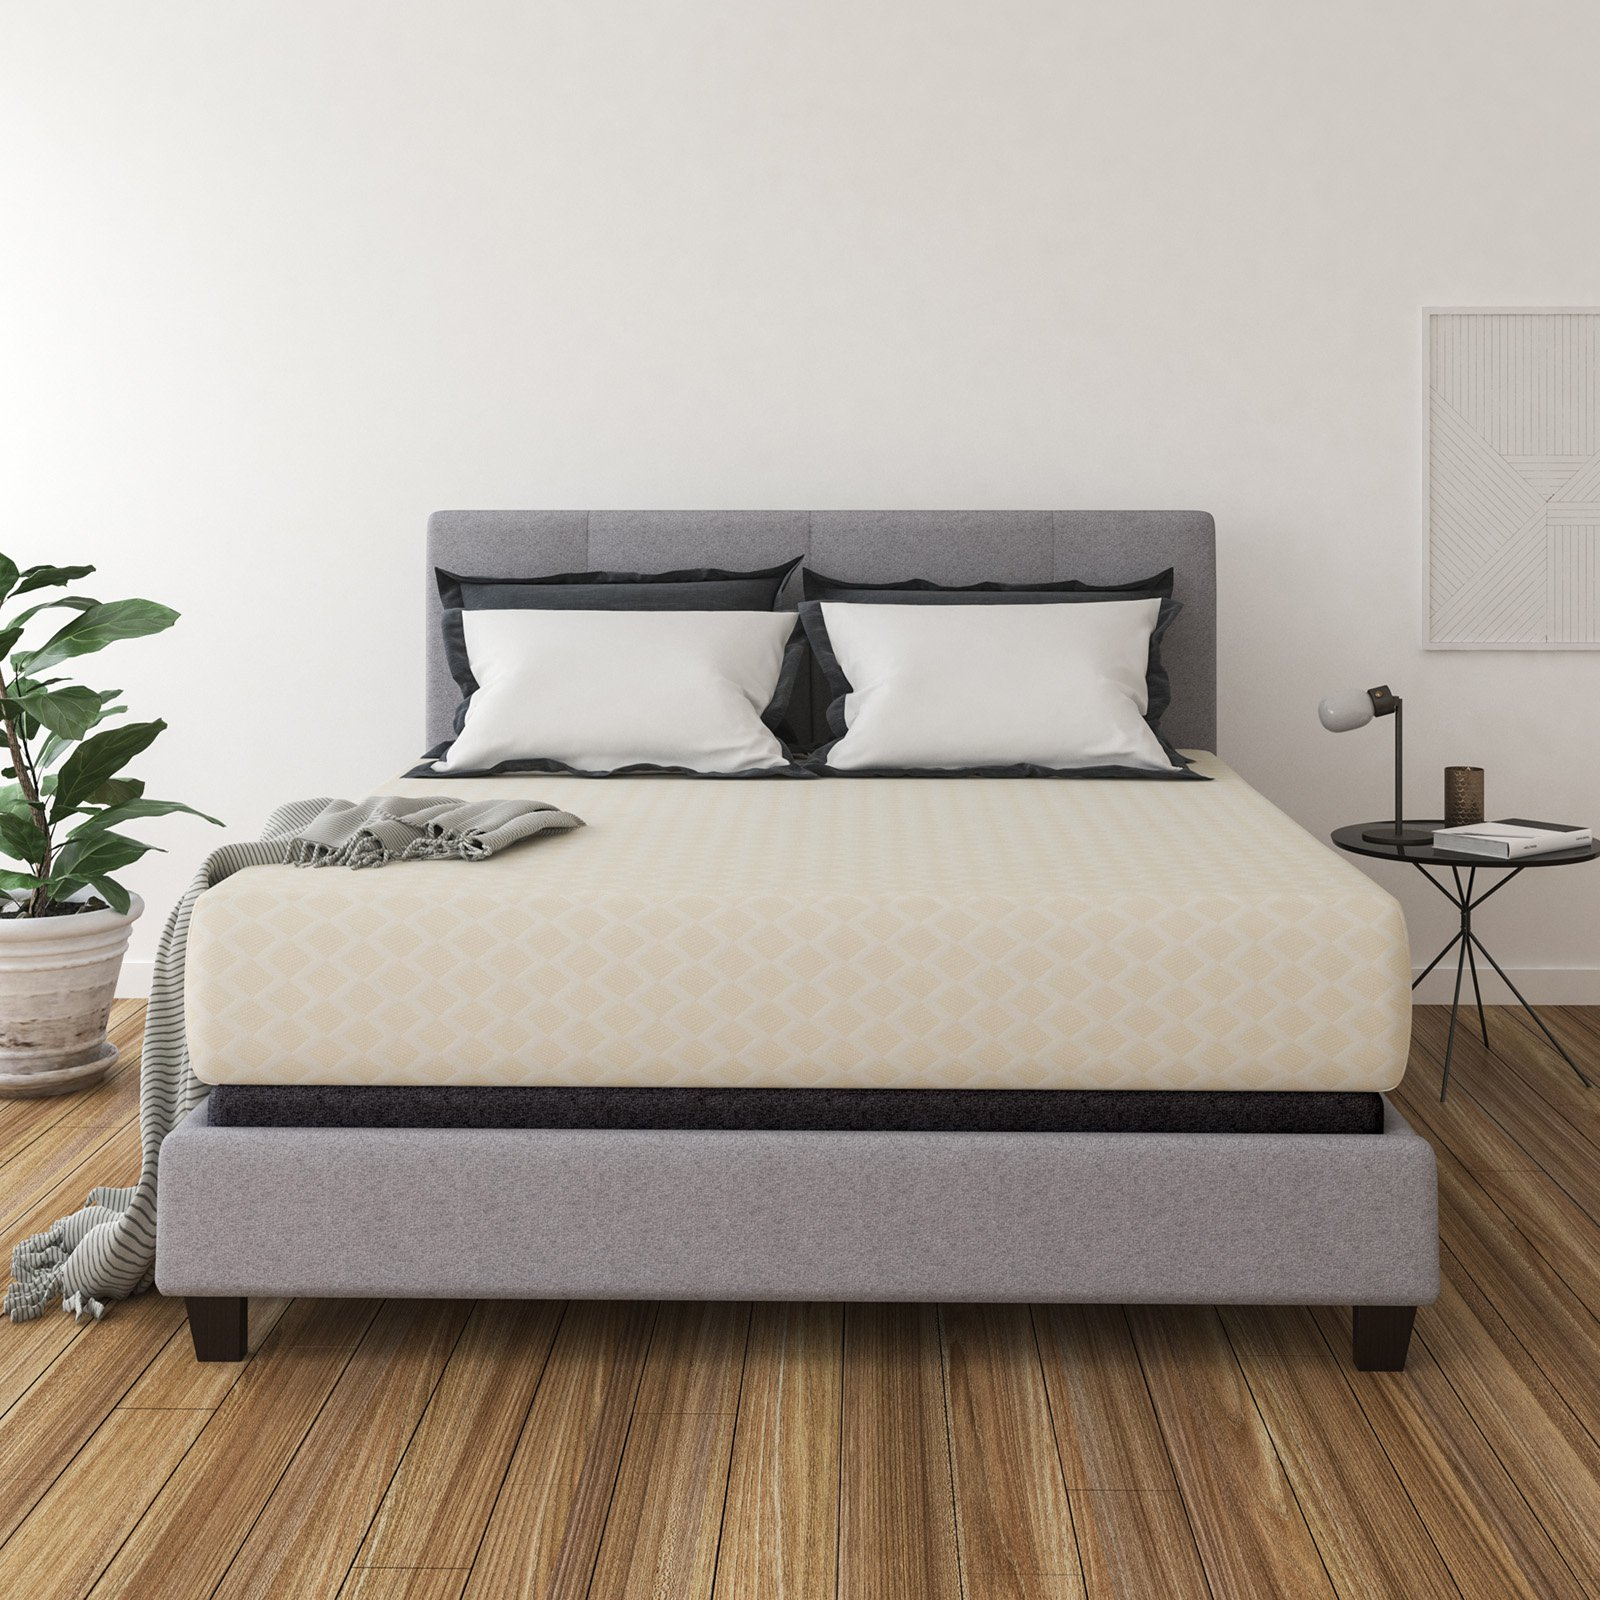 Signature Design by Ashley 12 in. Memory Foam Mattress